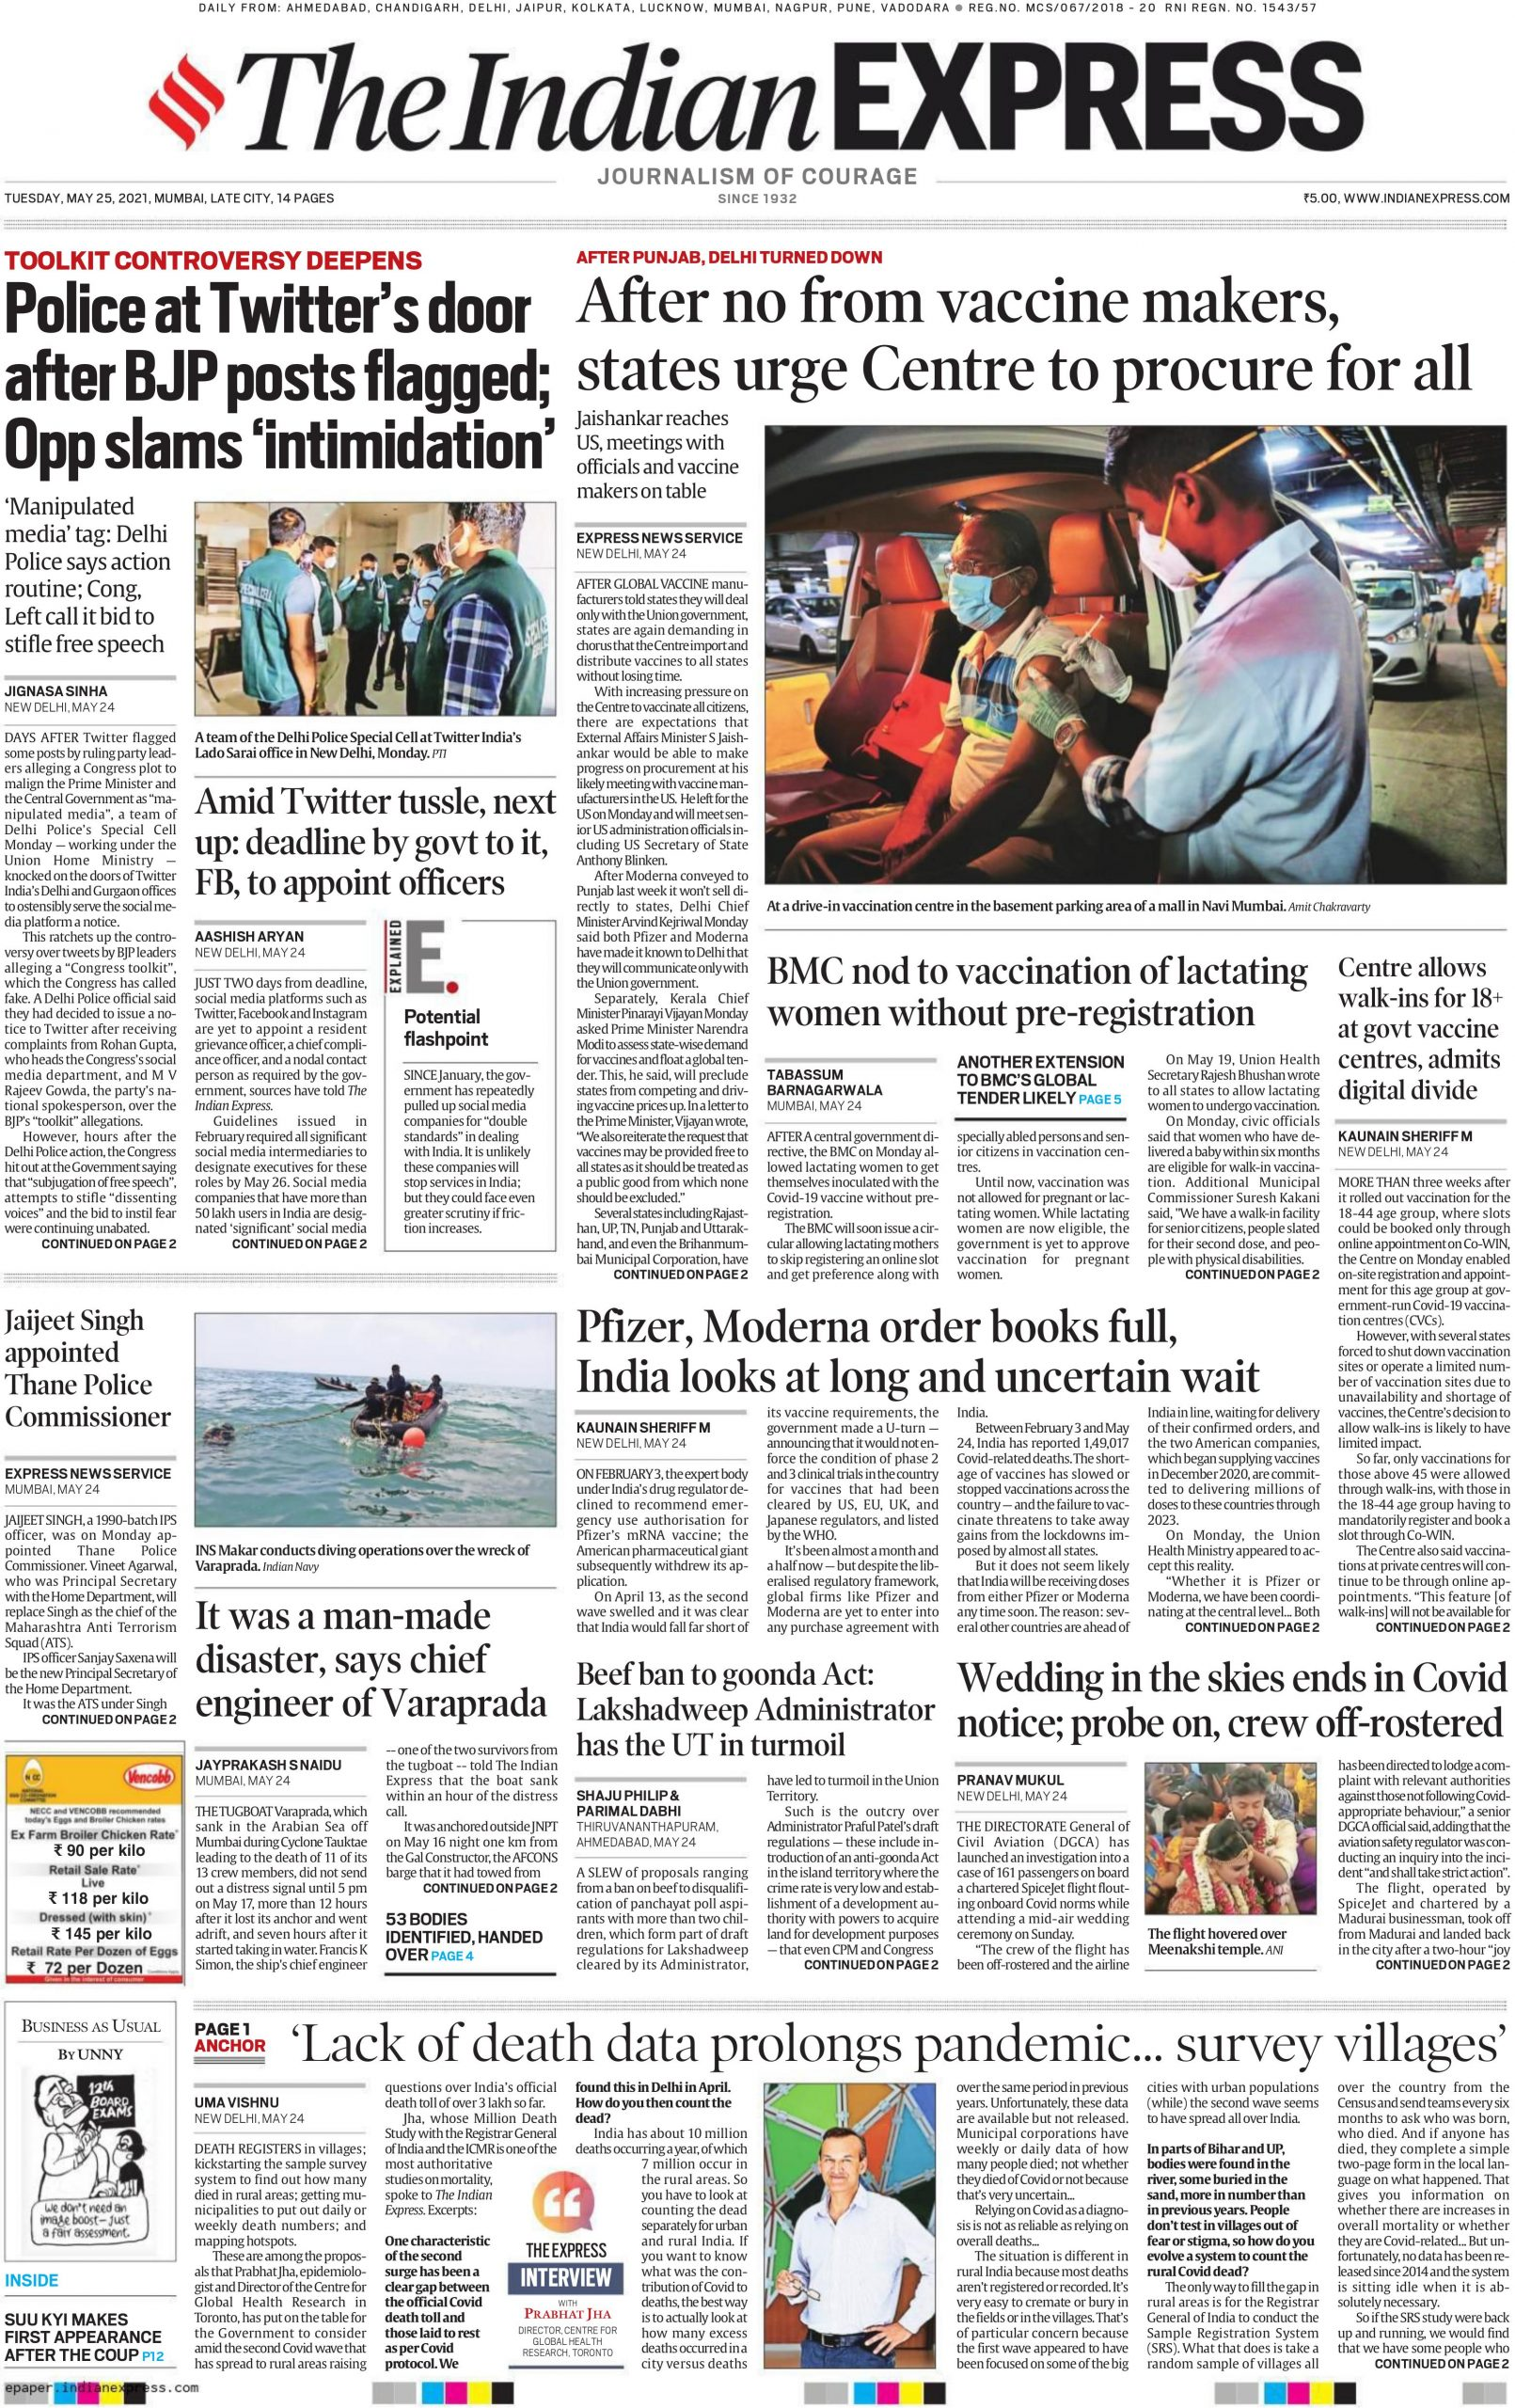 The Indian Express 25th May 2021